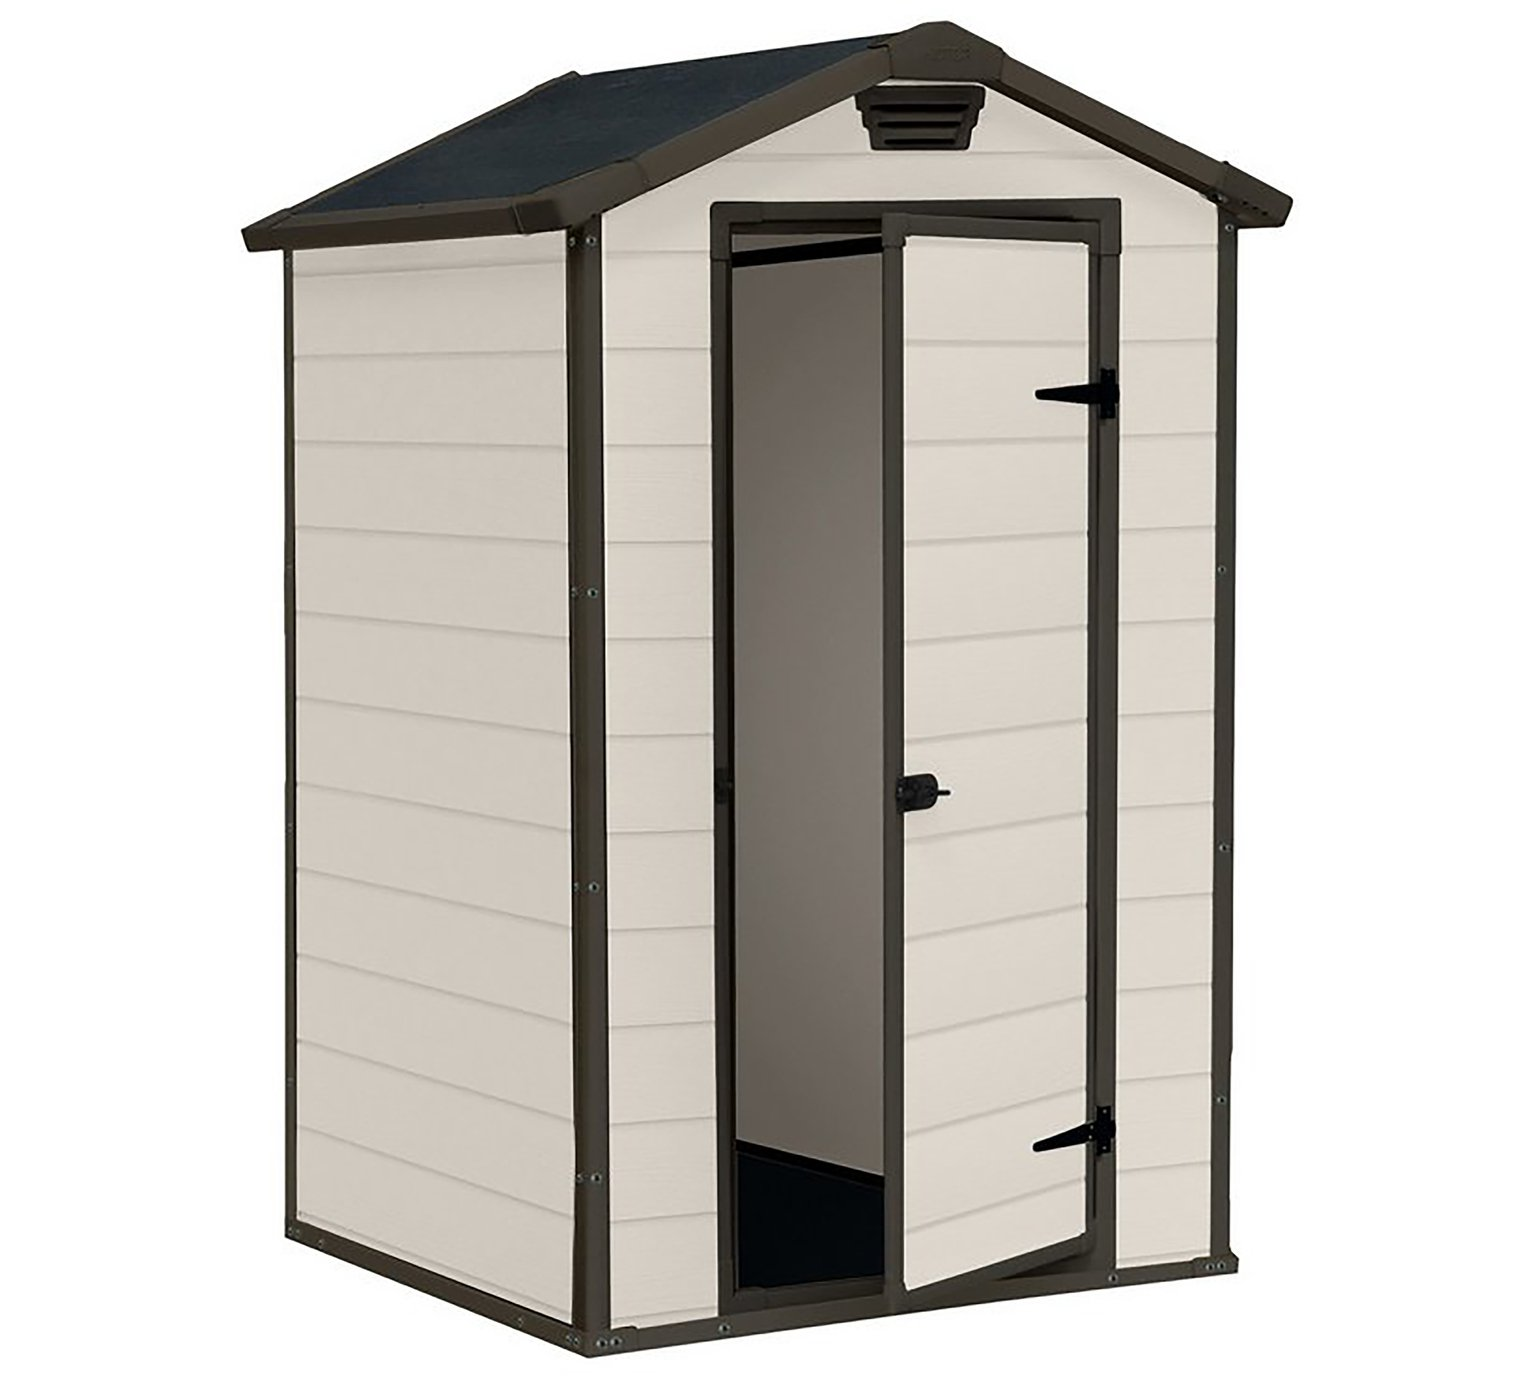 Garden Sheds 3 X 4 beautiful garden sheds 4 x 3 interior dimensions 1162 with